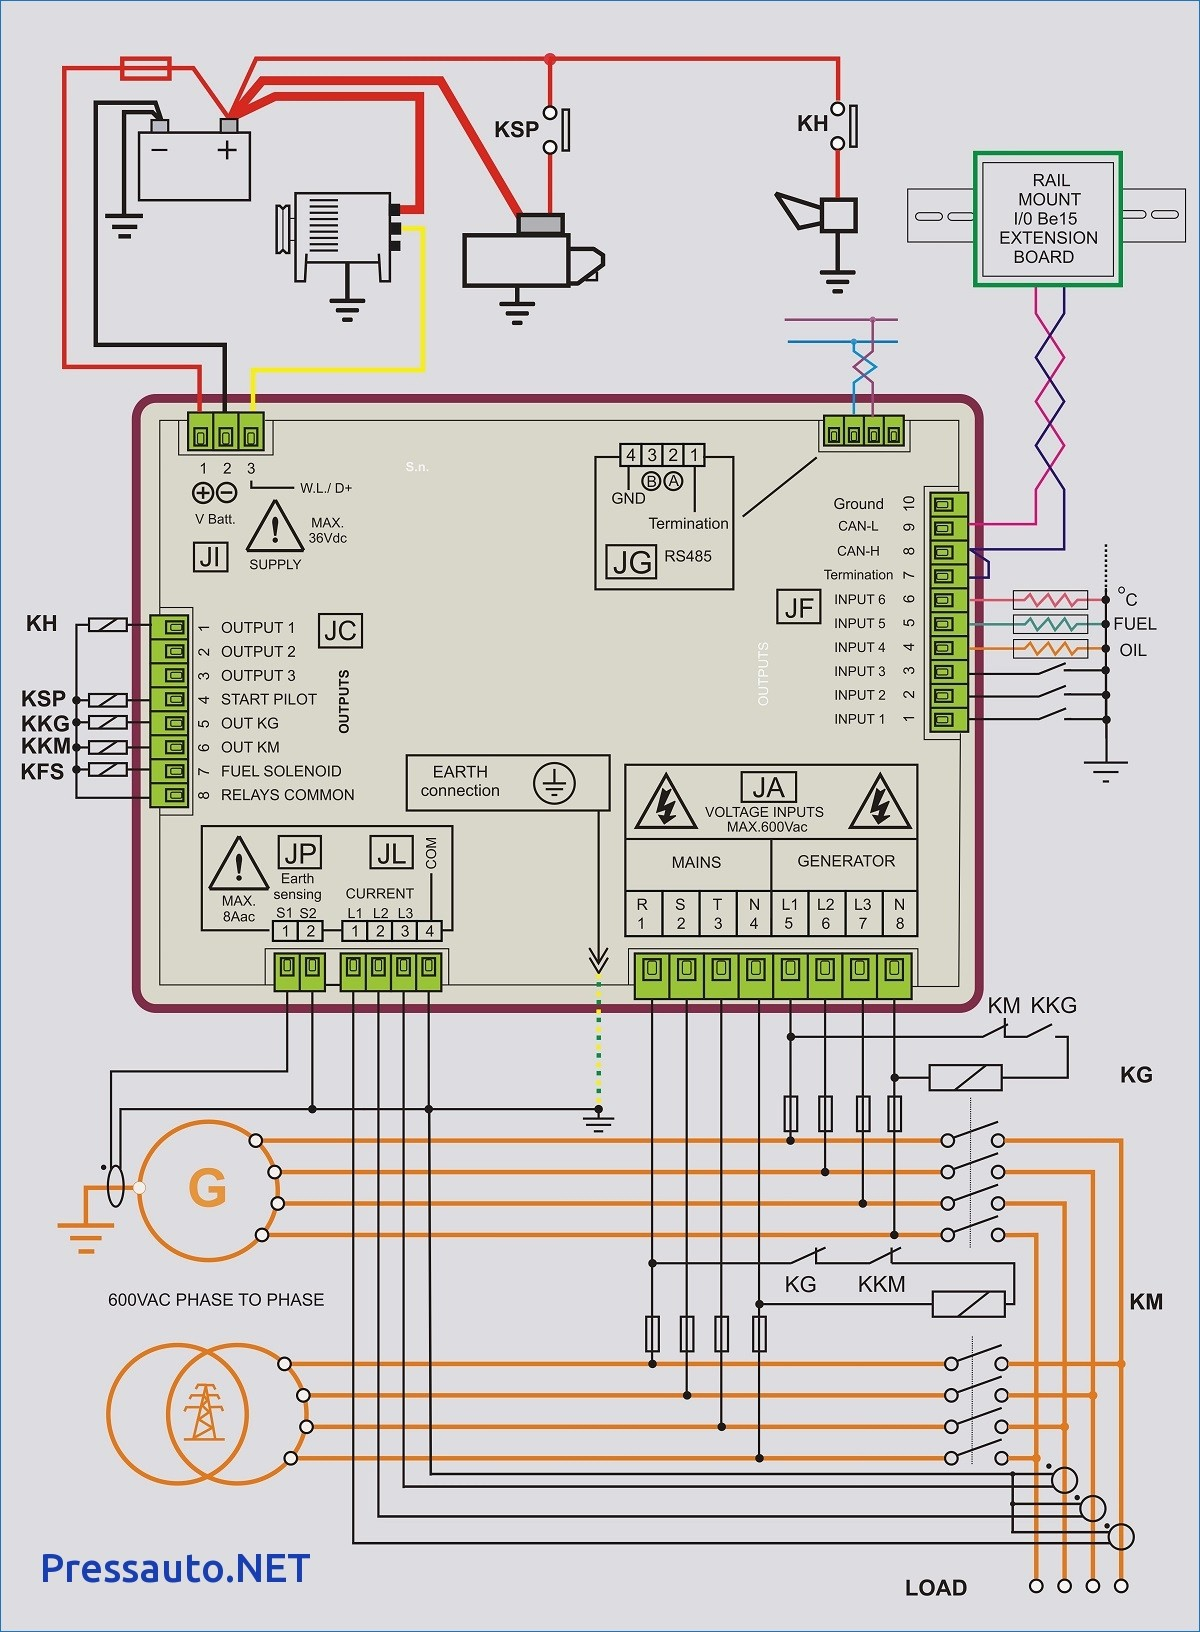 Home Generator Transfer Switch Wiring Diagram Diesel Homegeneratorcontrolpanelwiringdiagramjpg Modern How To Wire A Ornament The